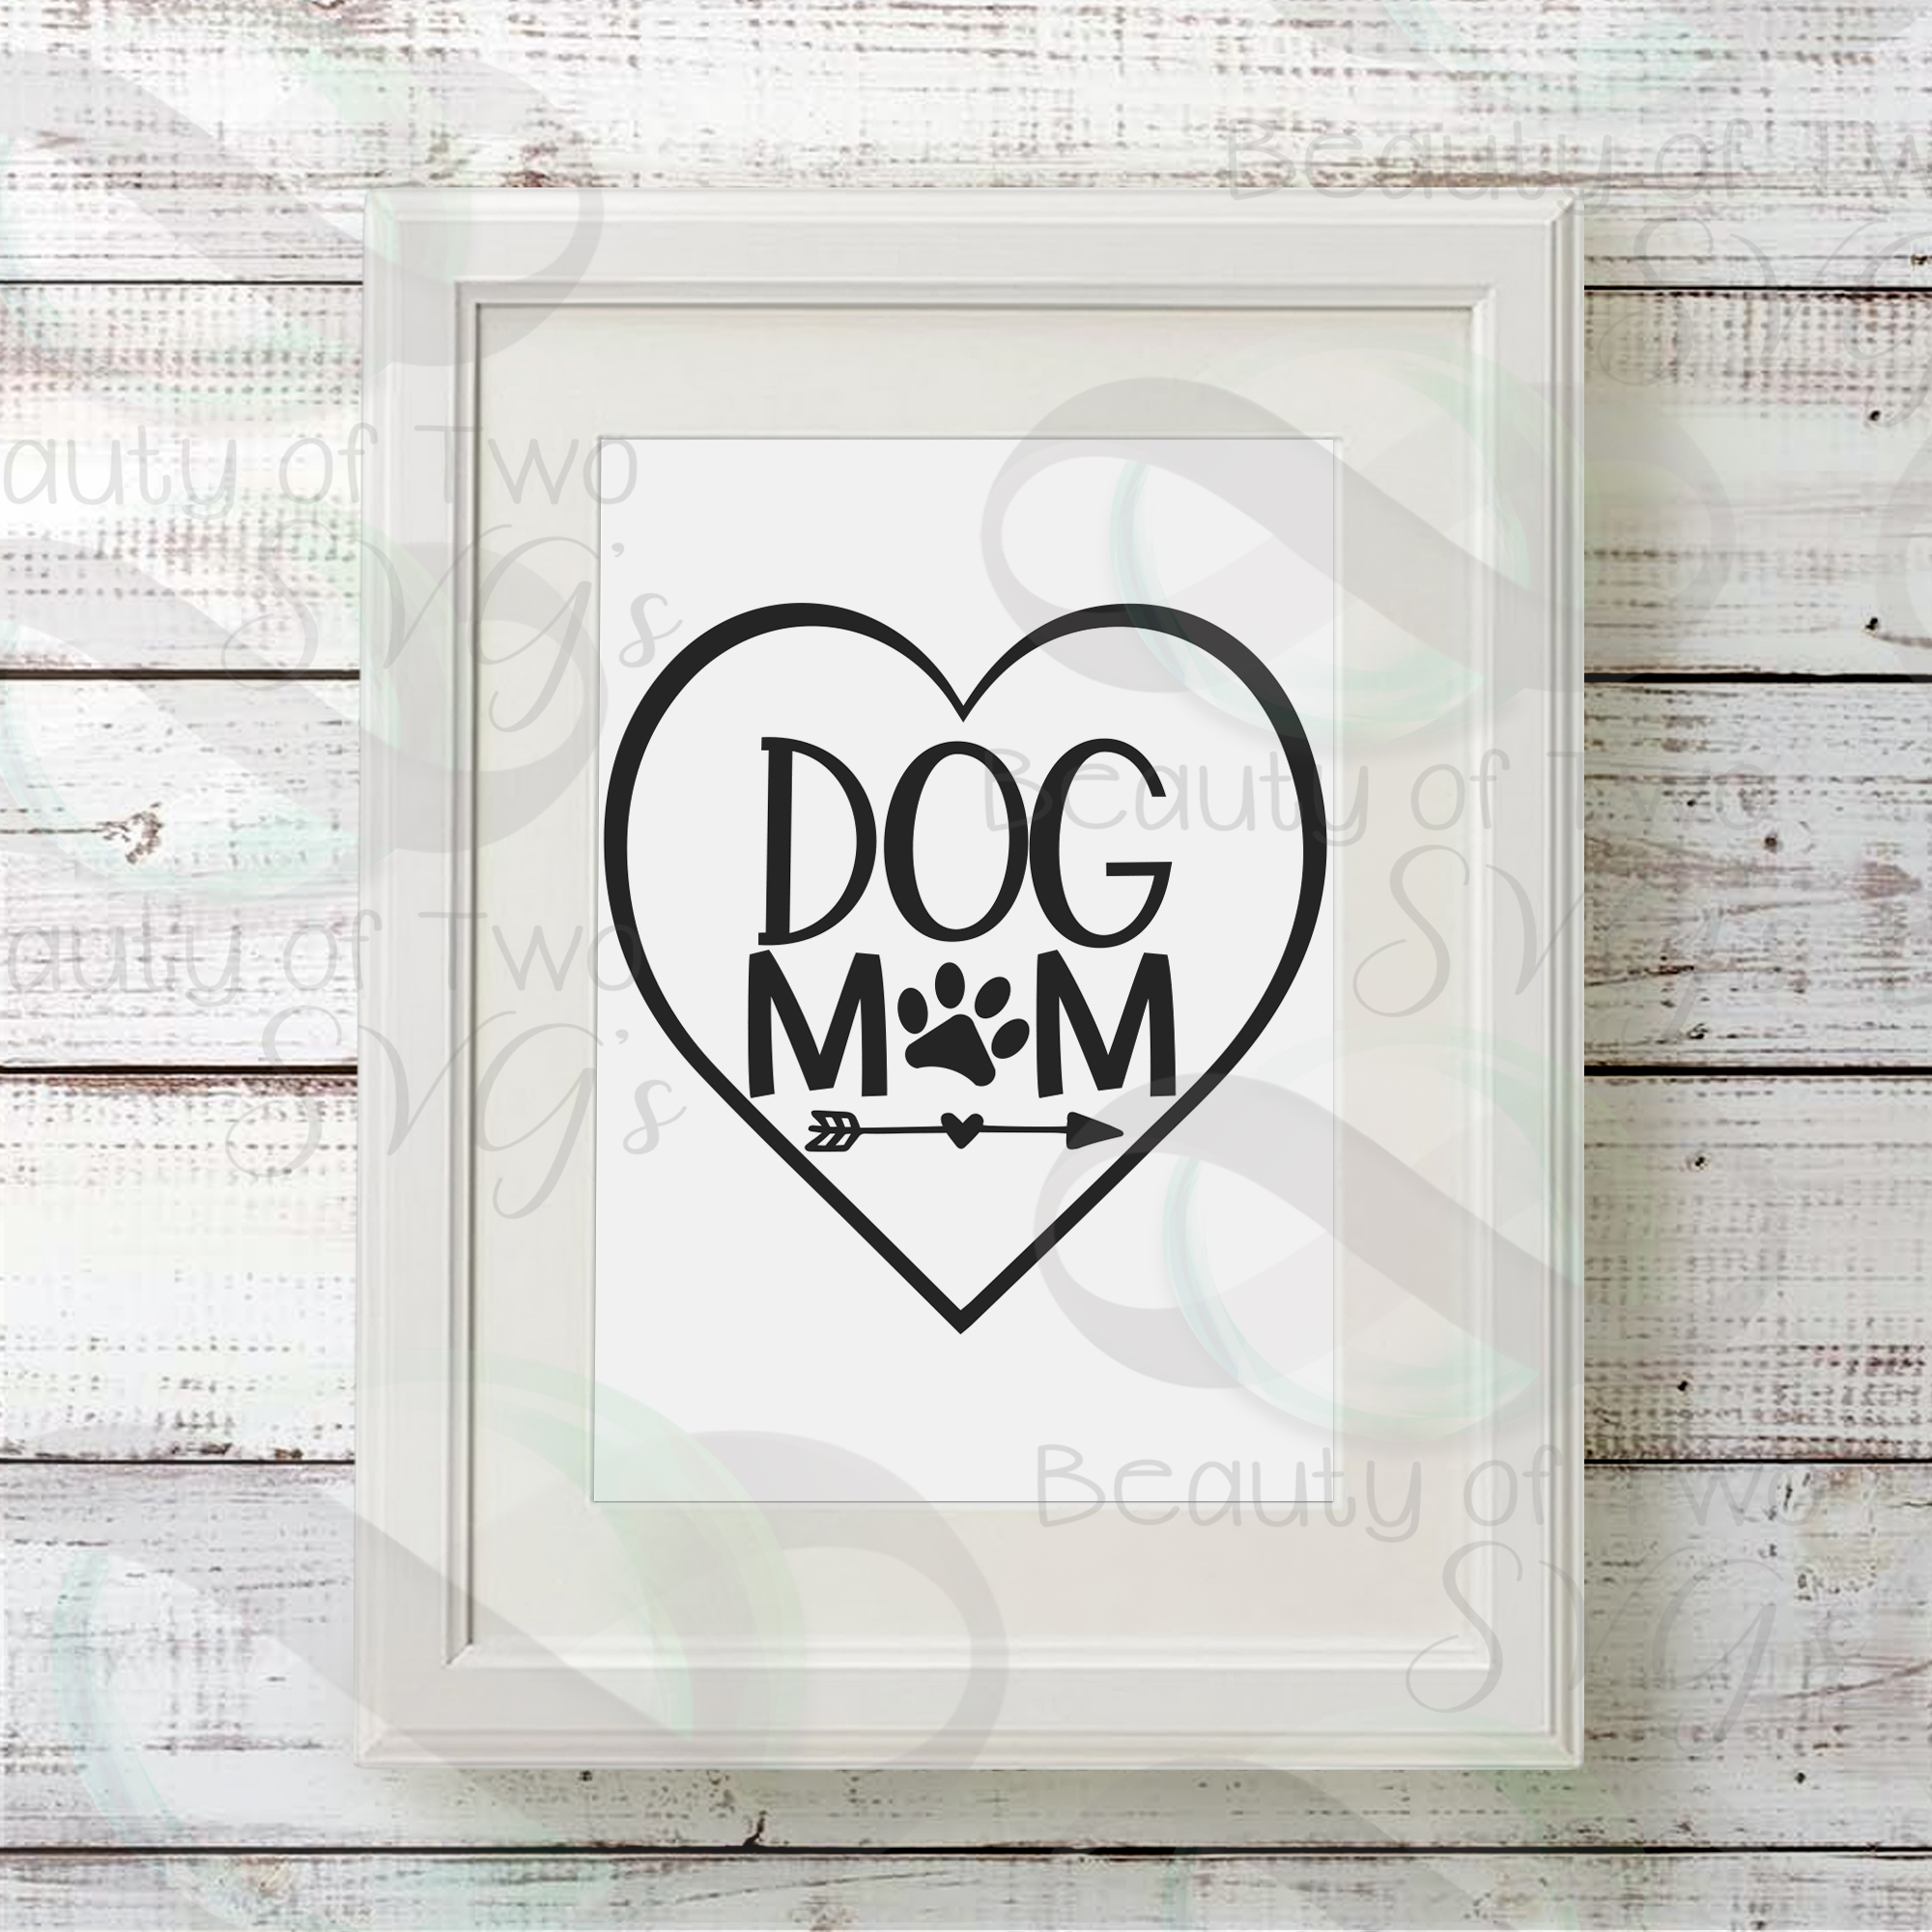 Dog Mom svg, Mothers Day dog svg, love my dog svg, dog svg example image 3